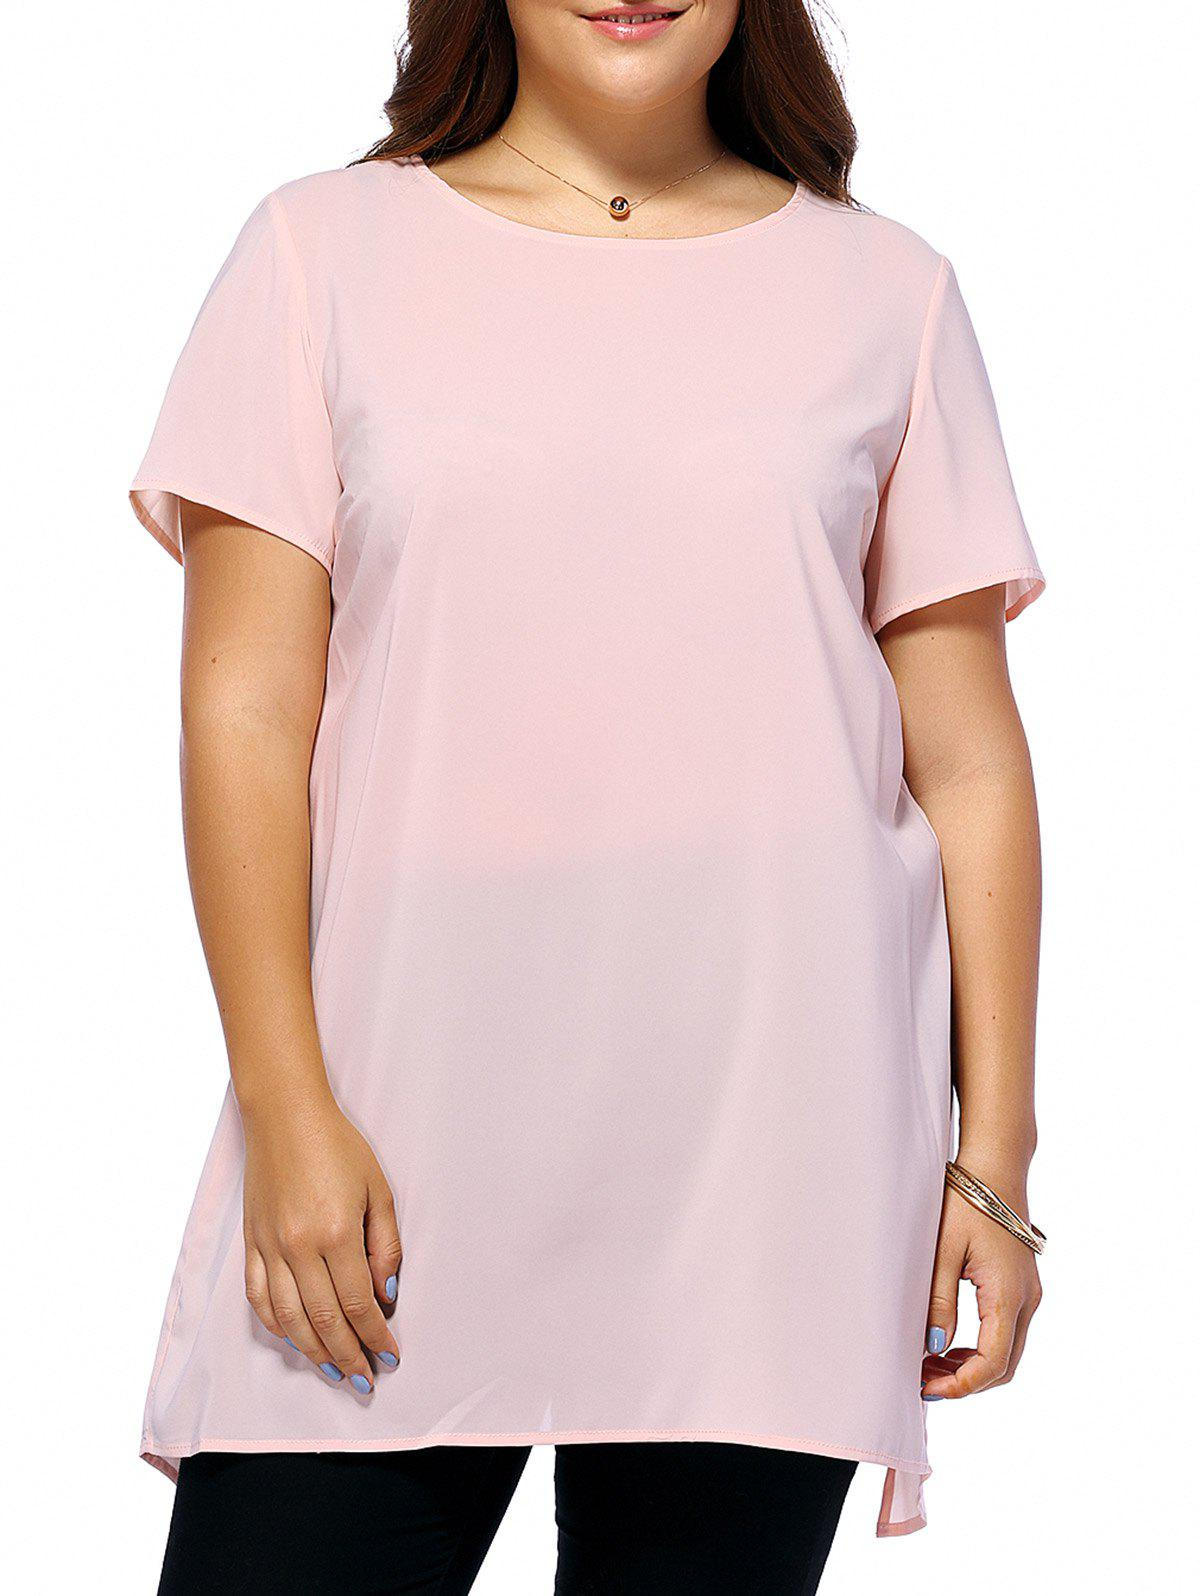 Stylish Plus Size Back Slit Pure Color Women's Blouse - SHALLOW PINK 2XL